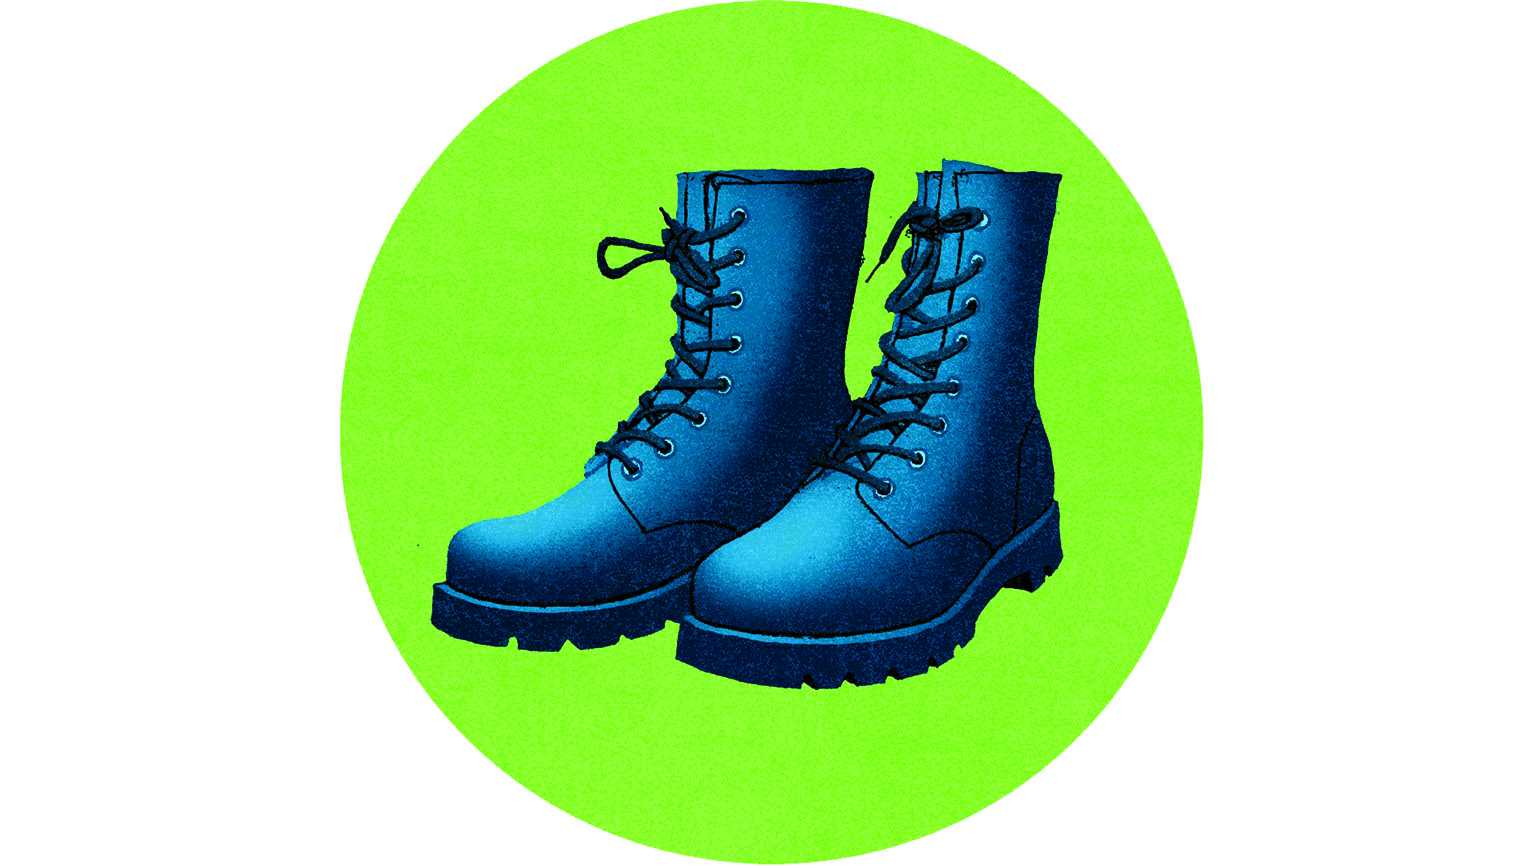 Illustration of a pair of boots